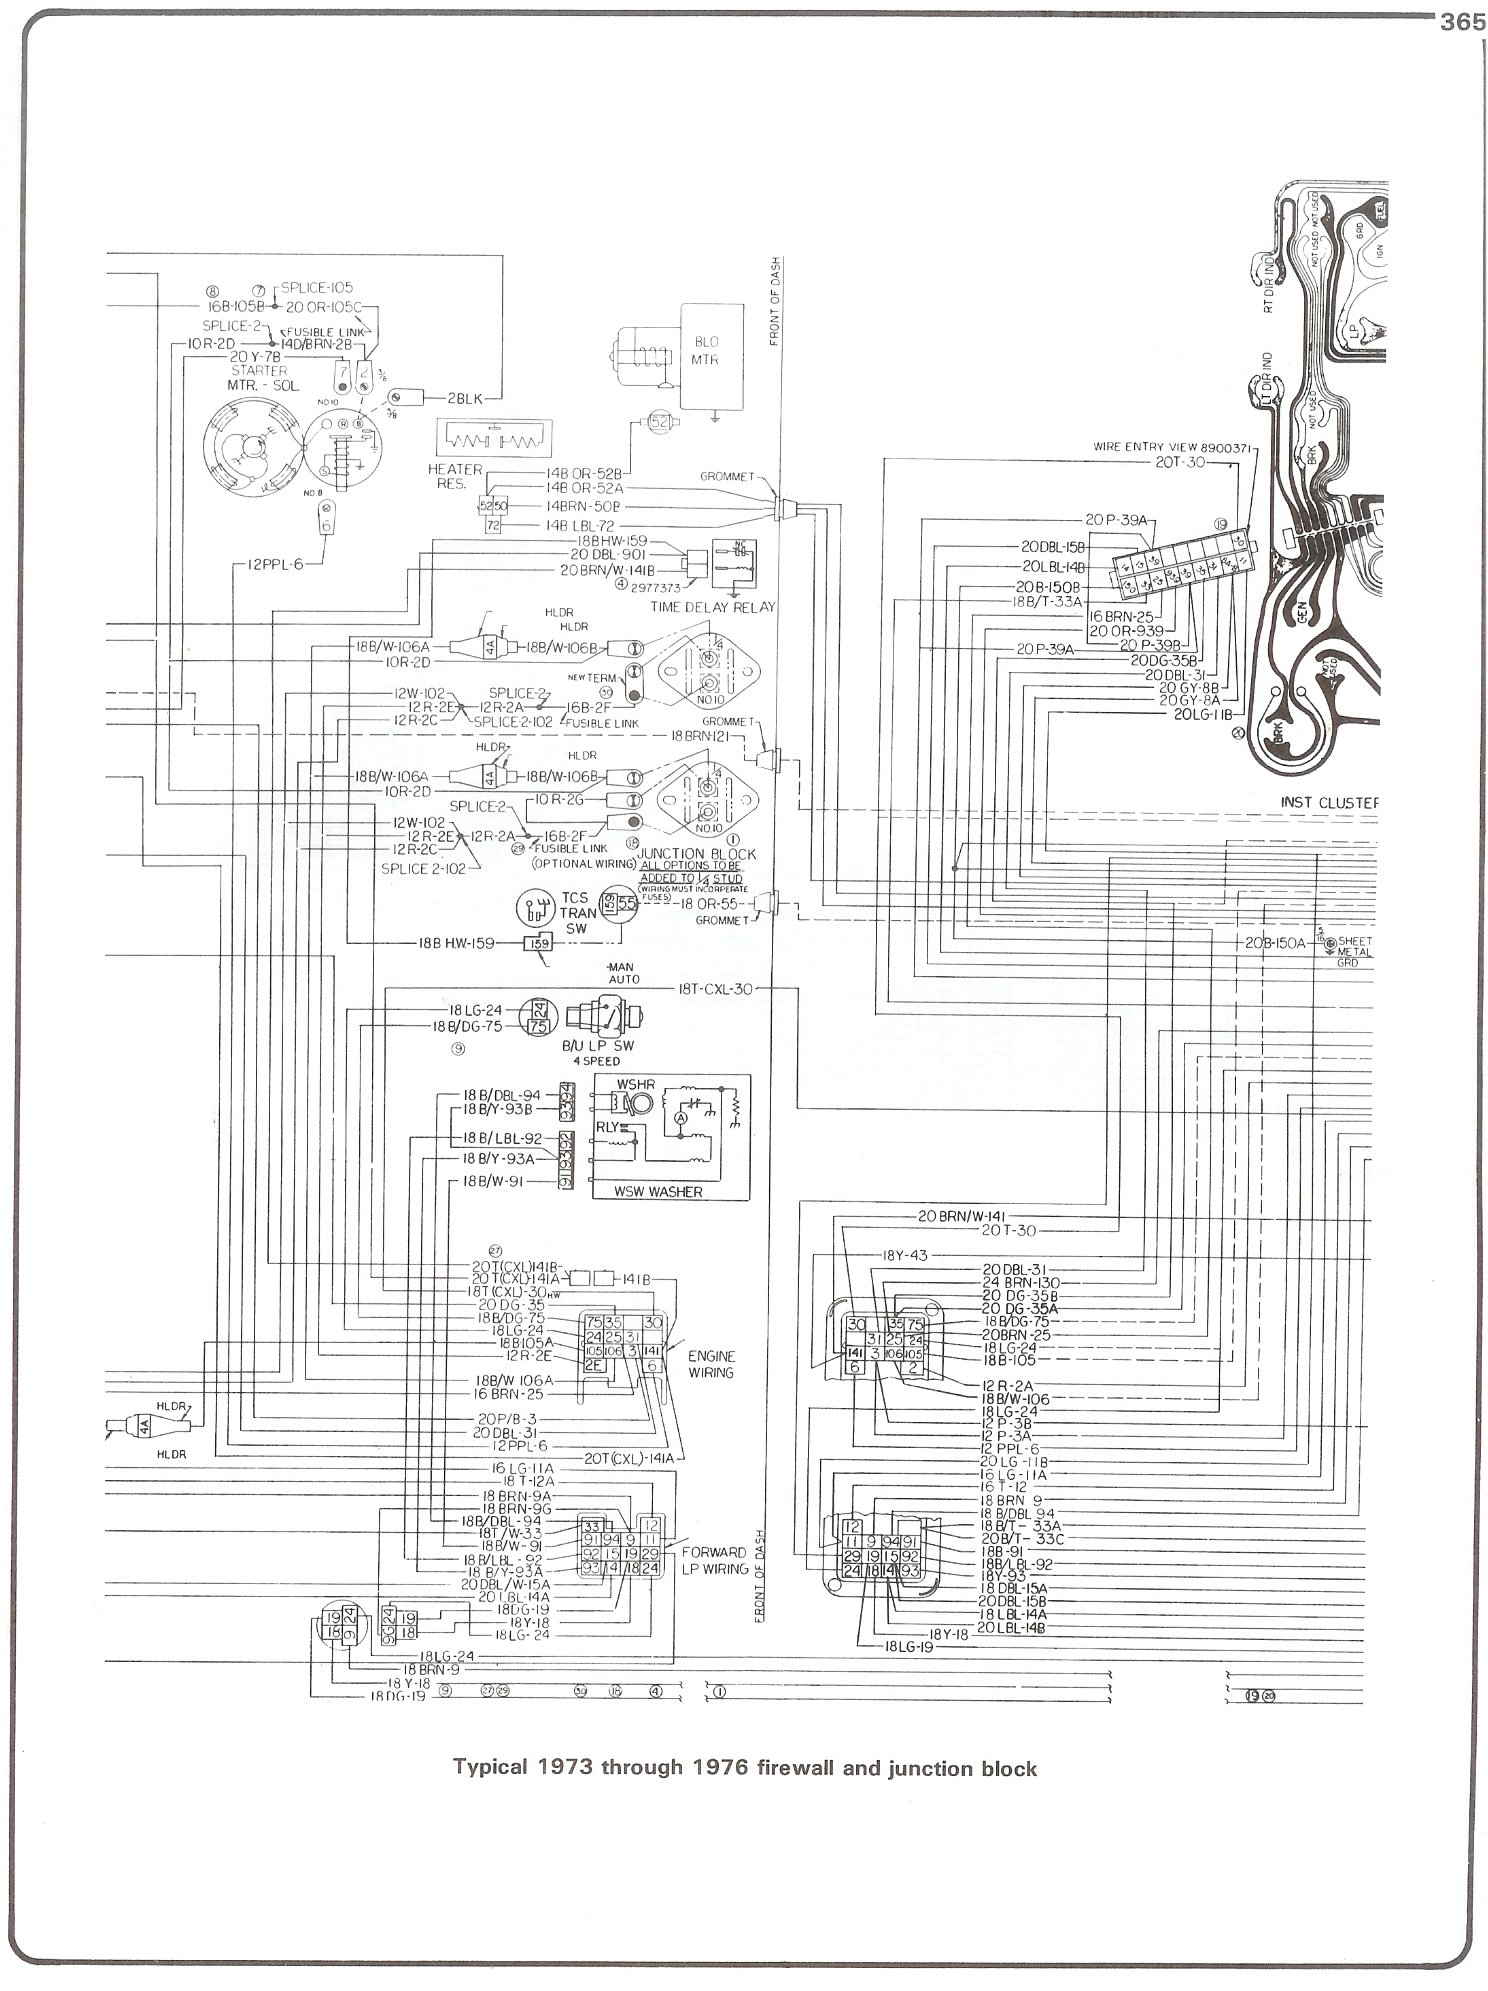 hight resolution of 85 chevy k20 truck fuze diagram data diagram schematic85 chevy fuse box diagram wiring diagram 85